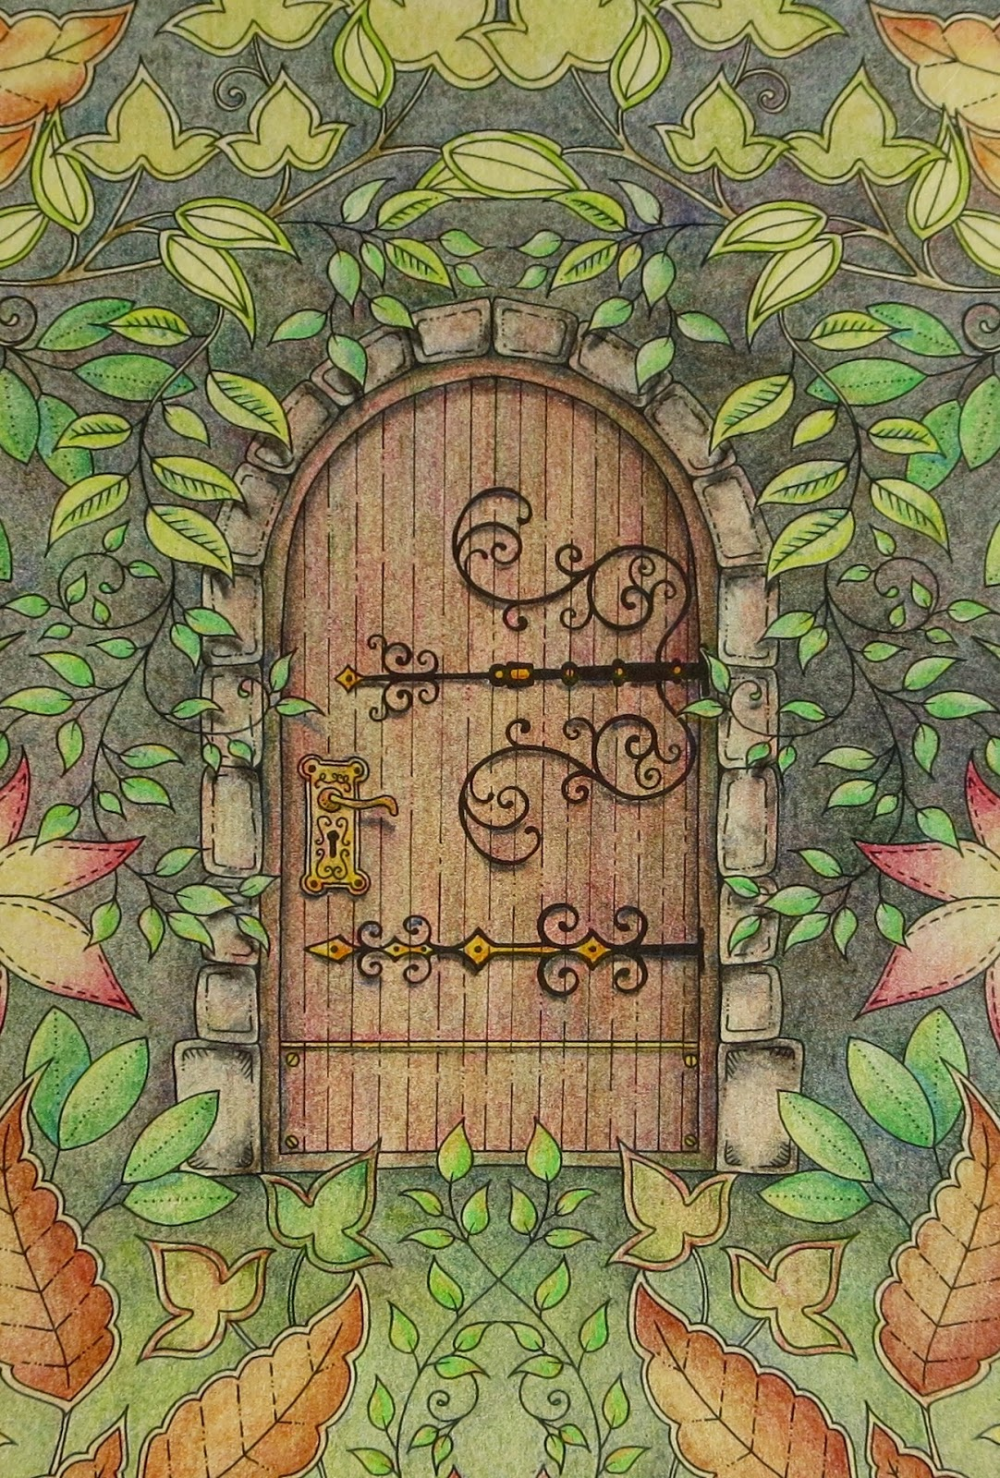 My Secret Garden colouring book, part 4 (With images